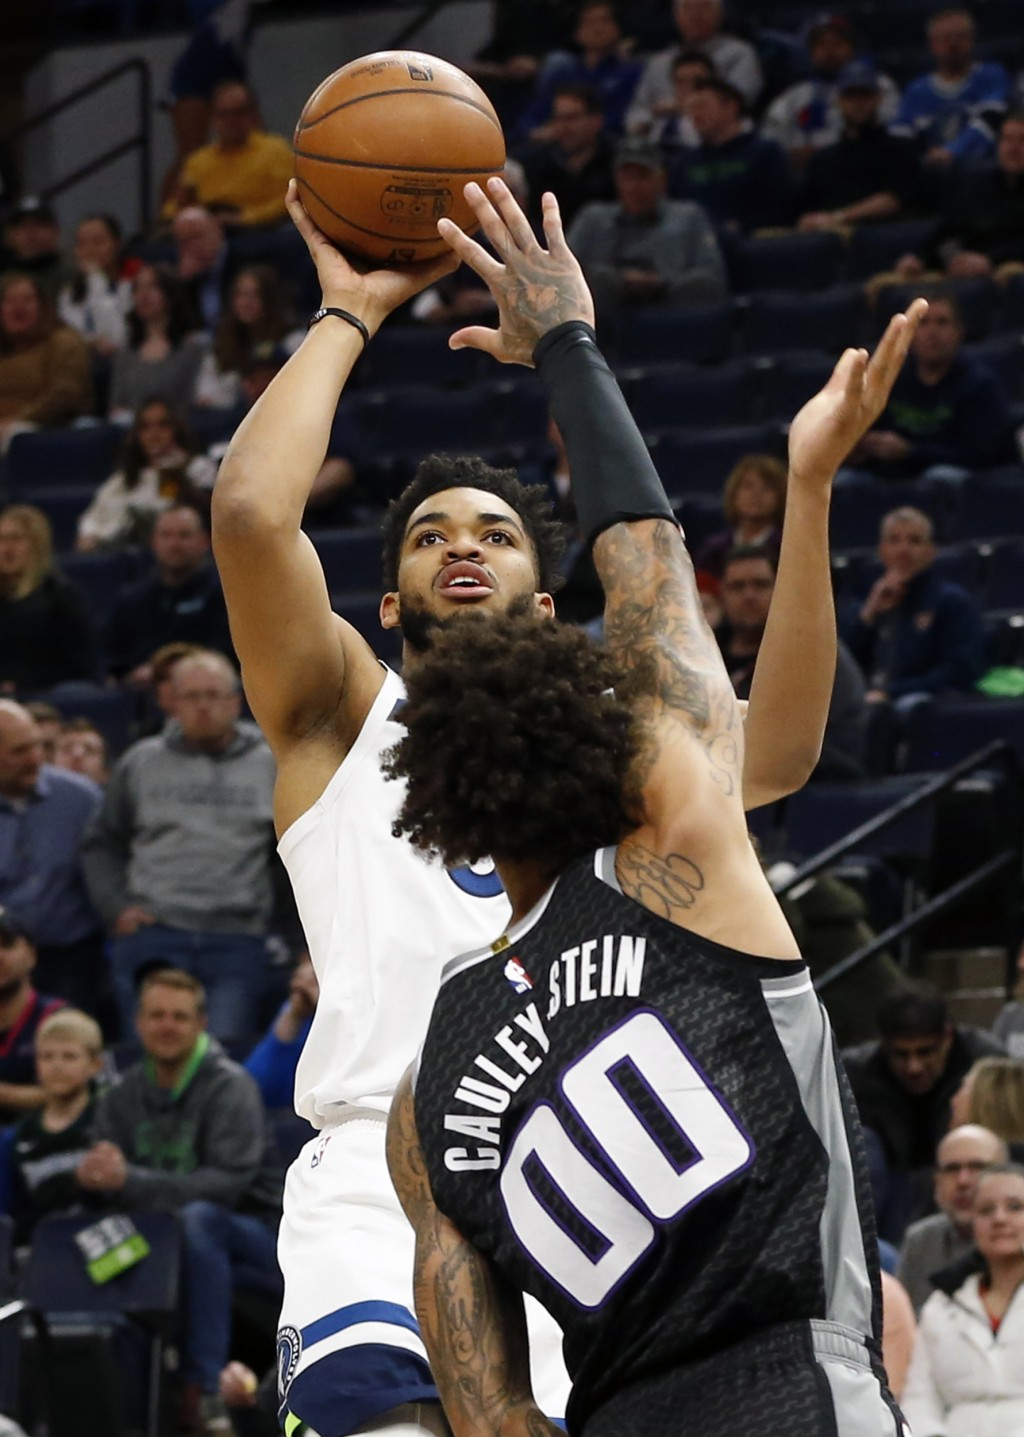 Minnesota Timberwolves' Karl-Anthony Towns, left, shoots over Sacramento Kings' Willie Cauley-Stein in the first half of an NBA basketball game Monday